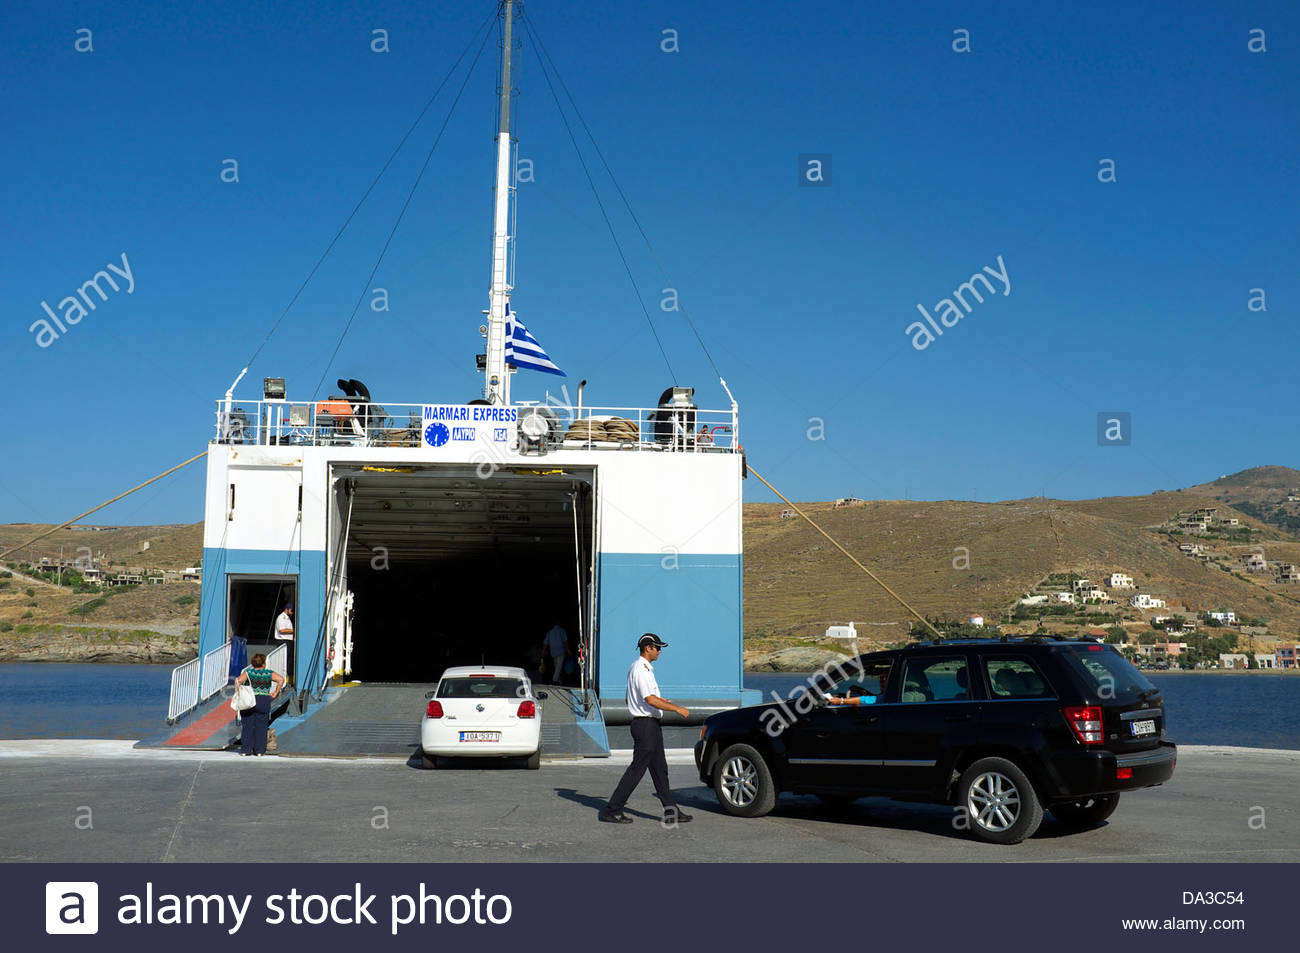 A ferry in the port of Korissia on Kea island, Greece, awaiting departure to Lavrio on the Greek mainland. - Stock Image